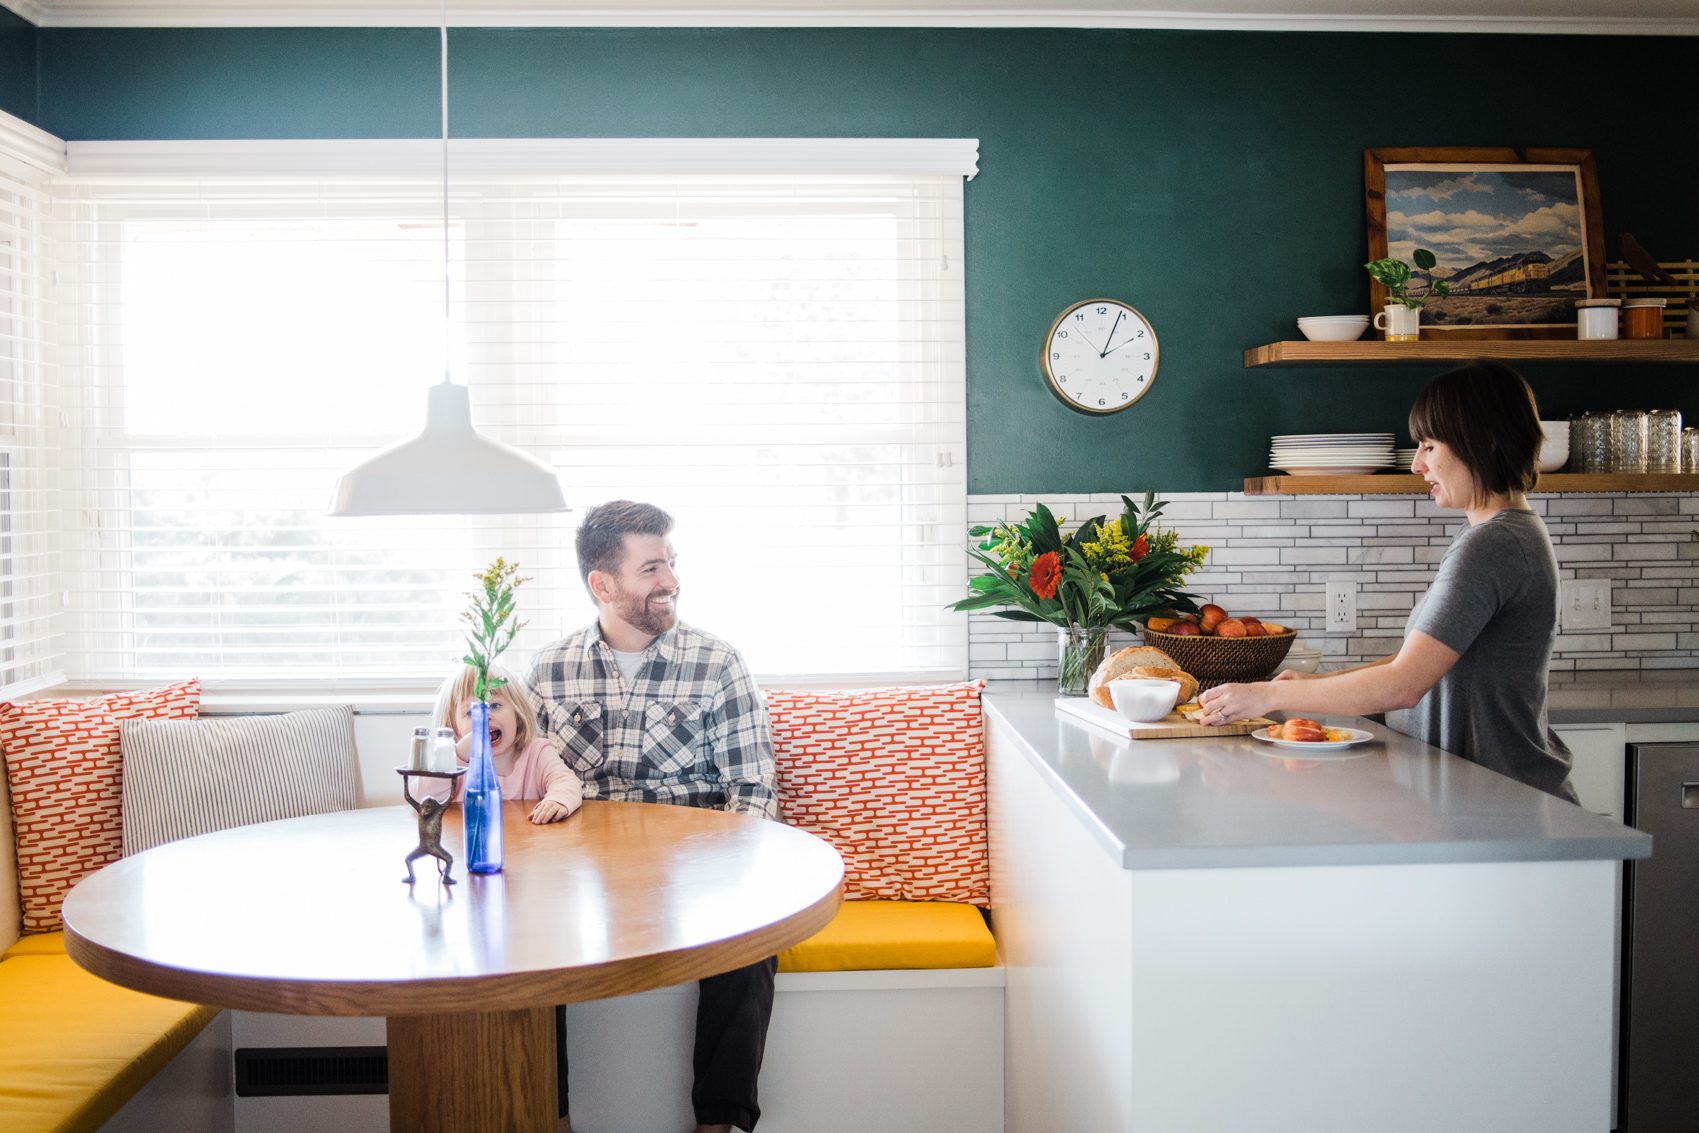 Built In Kitchen Bench | Creating A Built In Banquette Or Bench Seating For A Kitchen